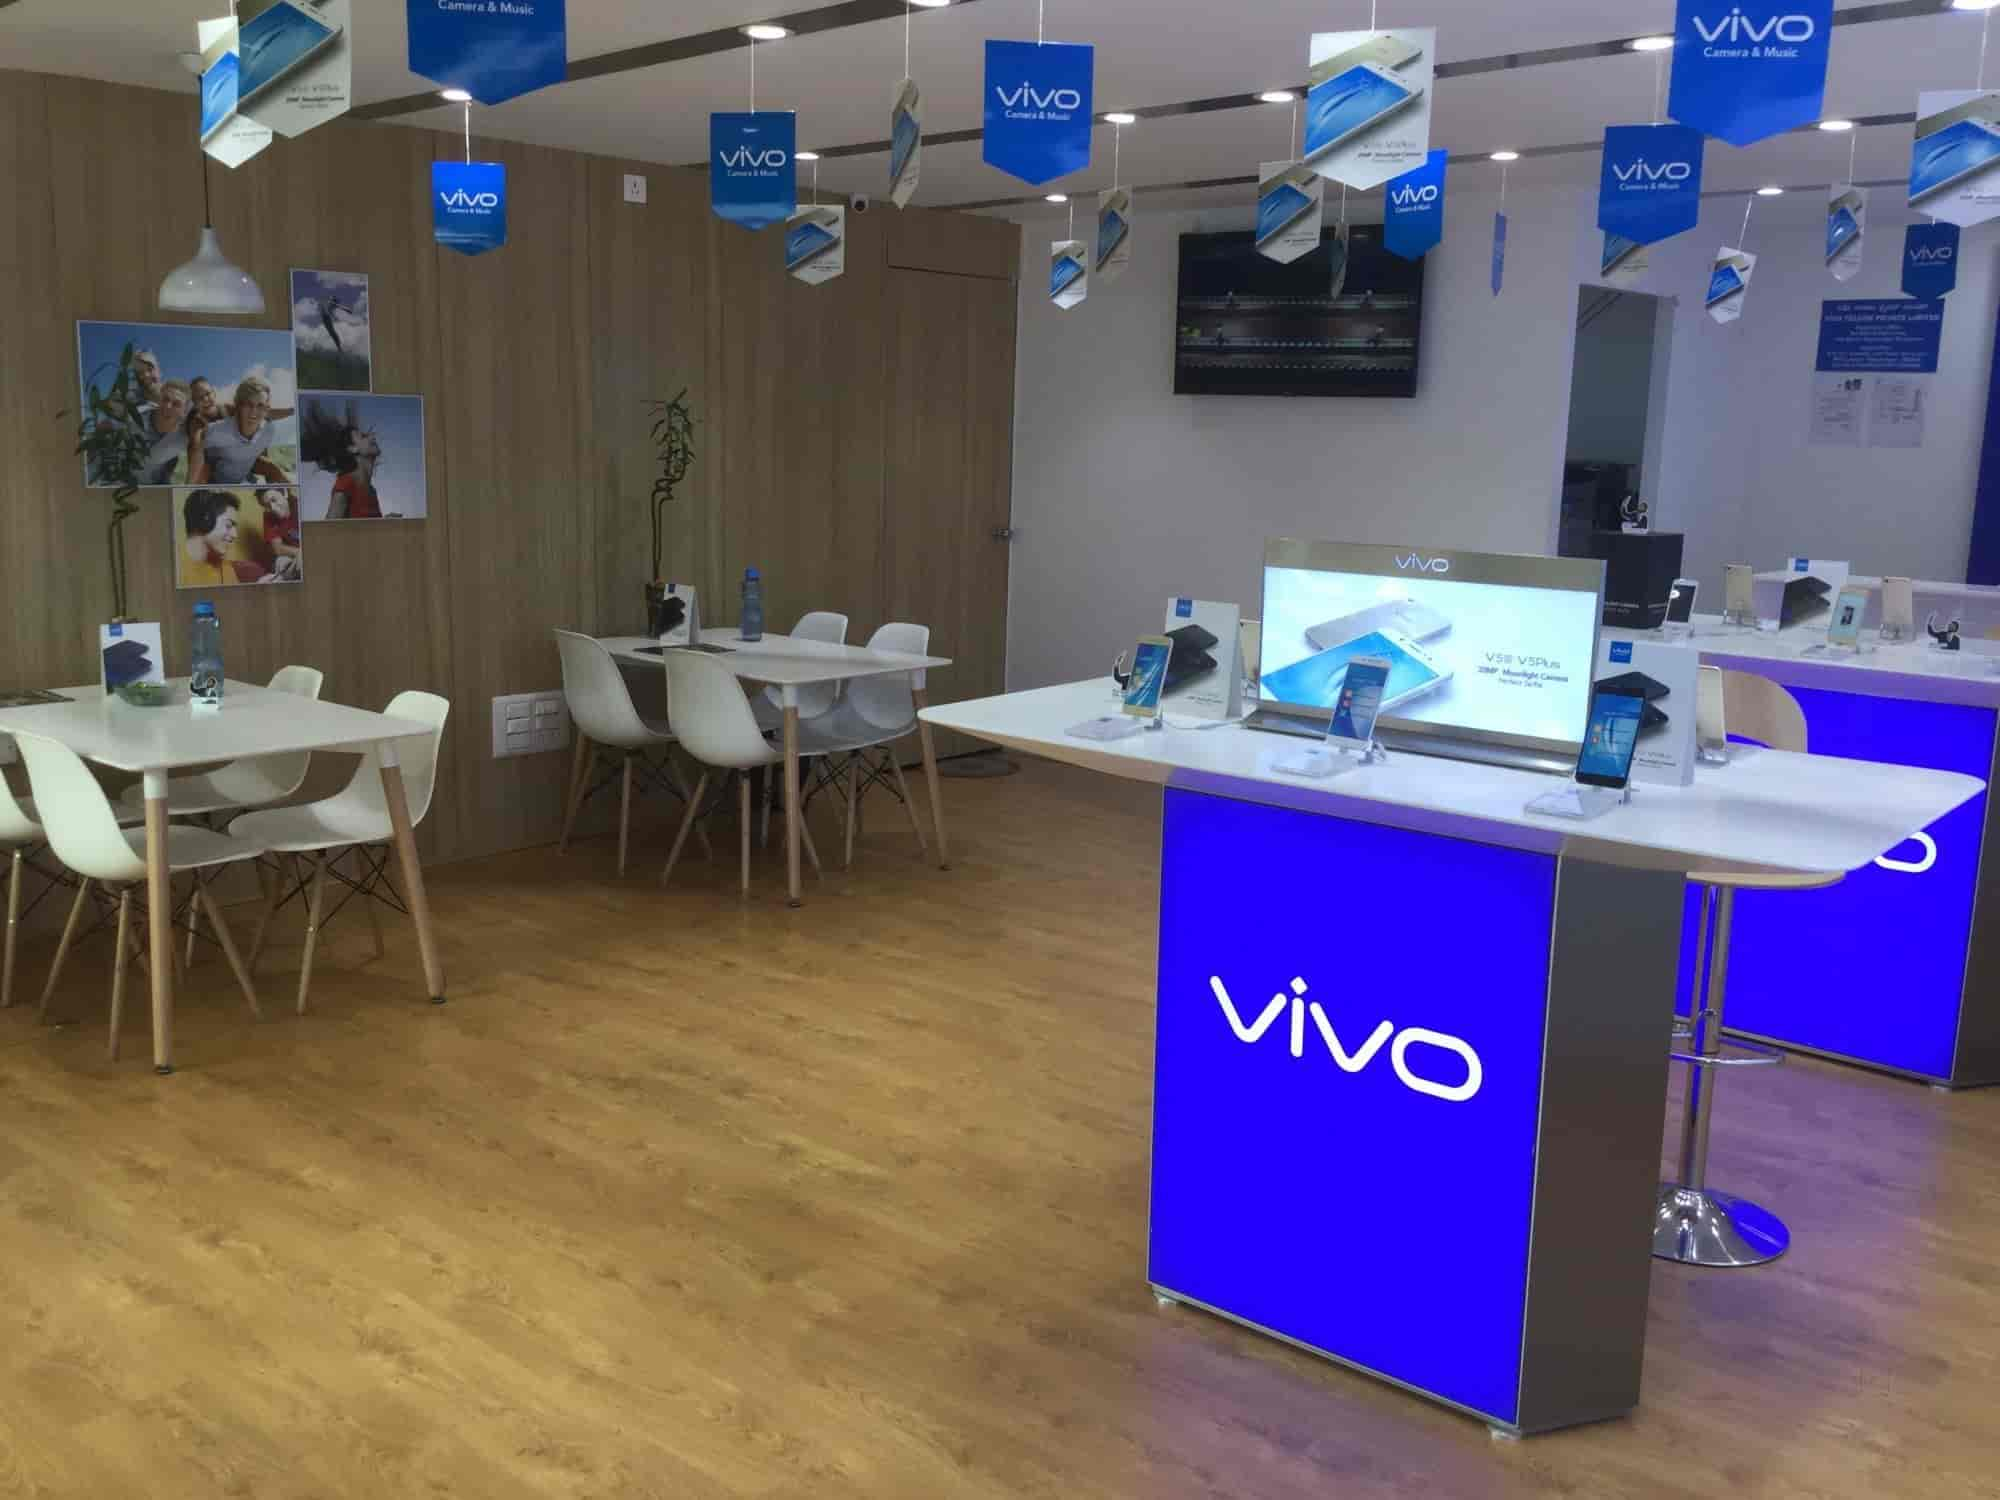 Vivo Exclusive Store, Rajajinagar 2nd Block - Mobile Phone